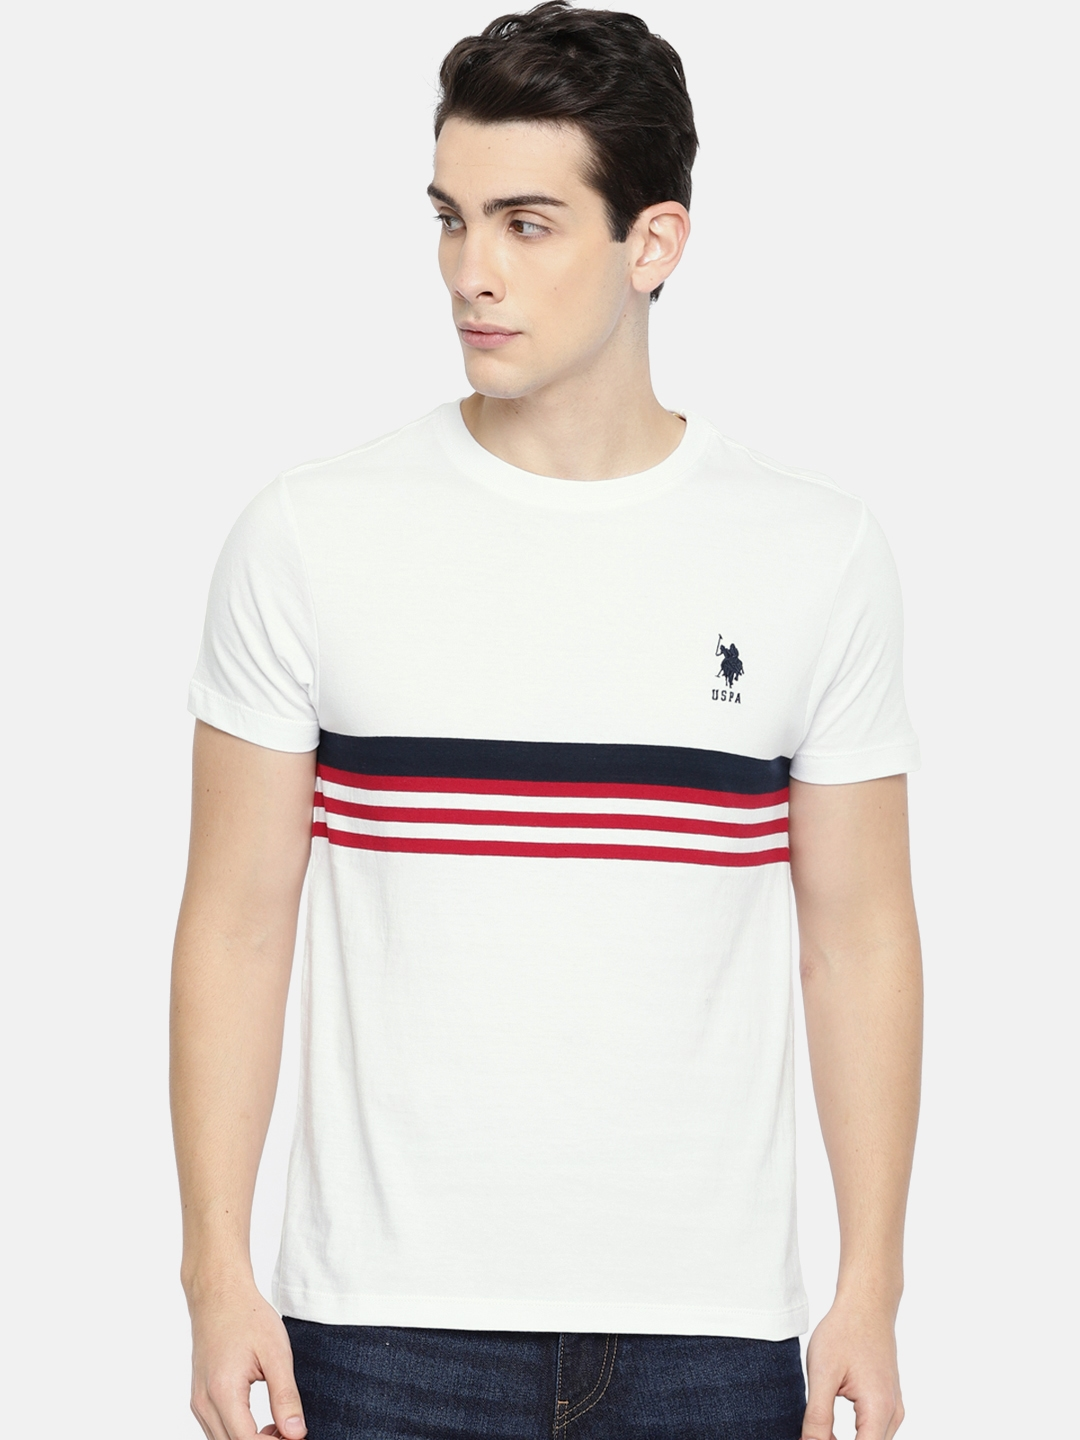 bb6cee662 Buy U.S. Polo Assn. Men White & Red Striped Round Neck T Shirt ...